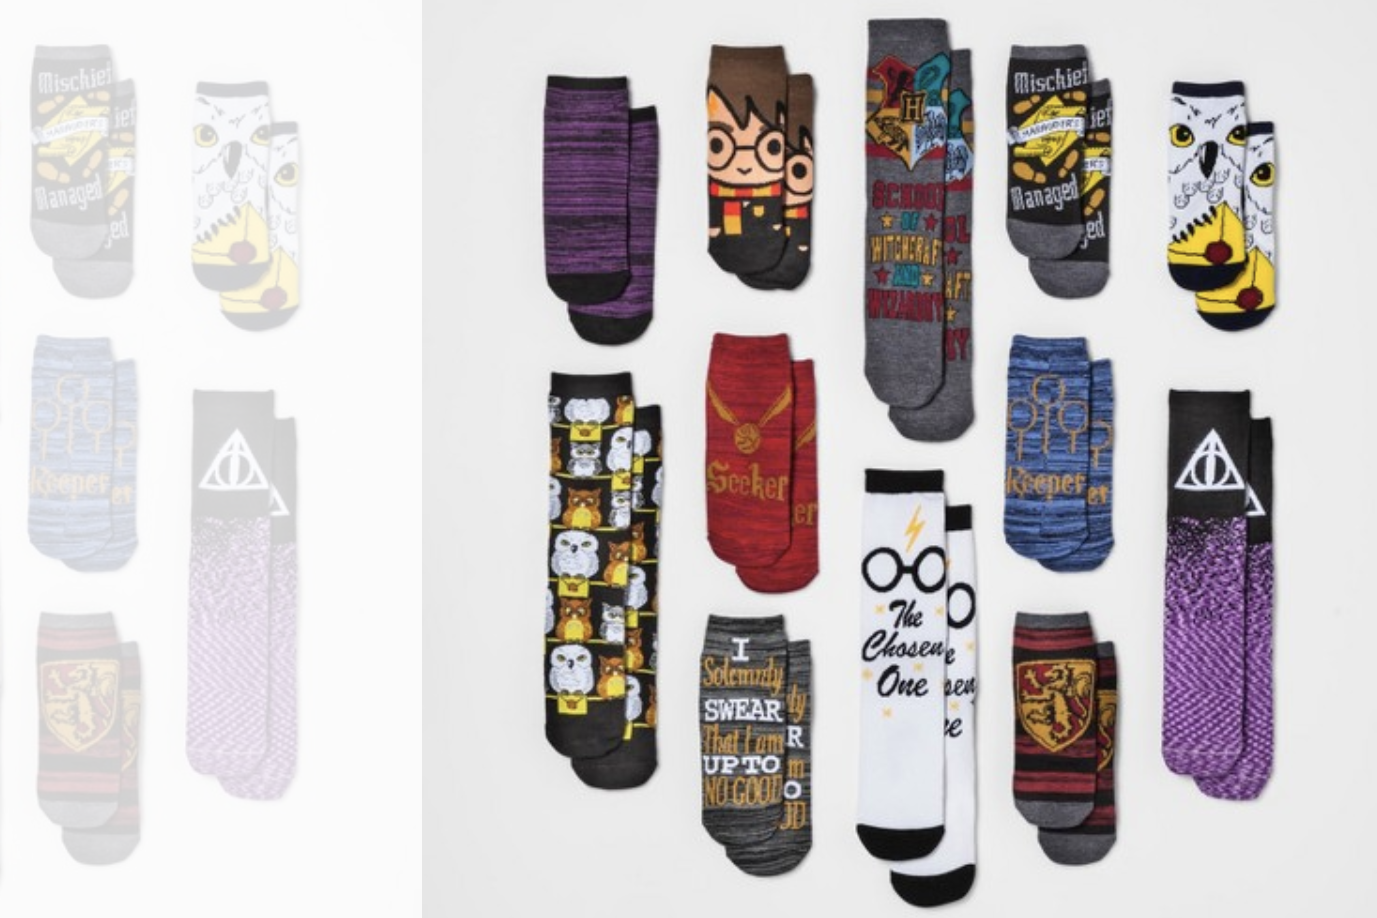 380c9d1abc25 Socks - latest news, breaking stories and comment - The Independent